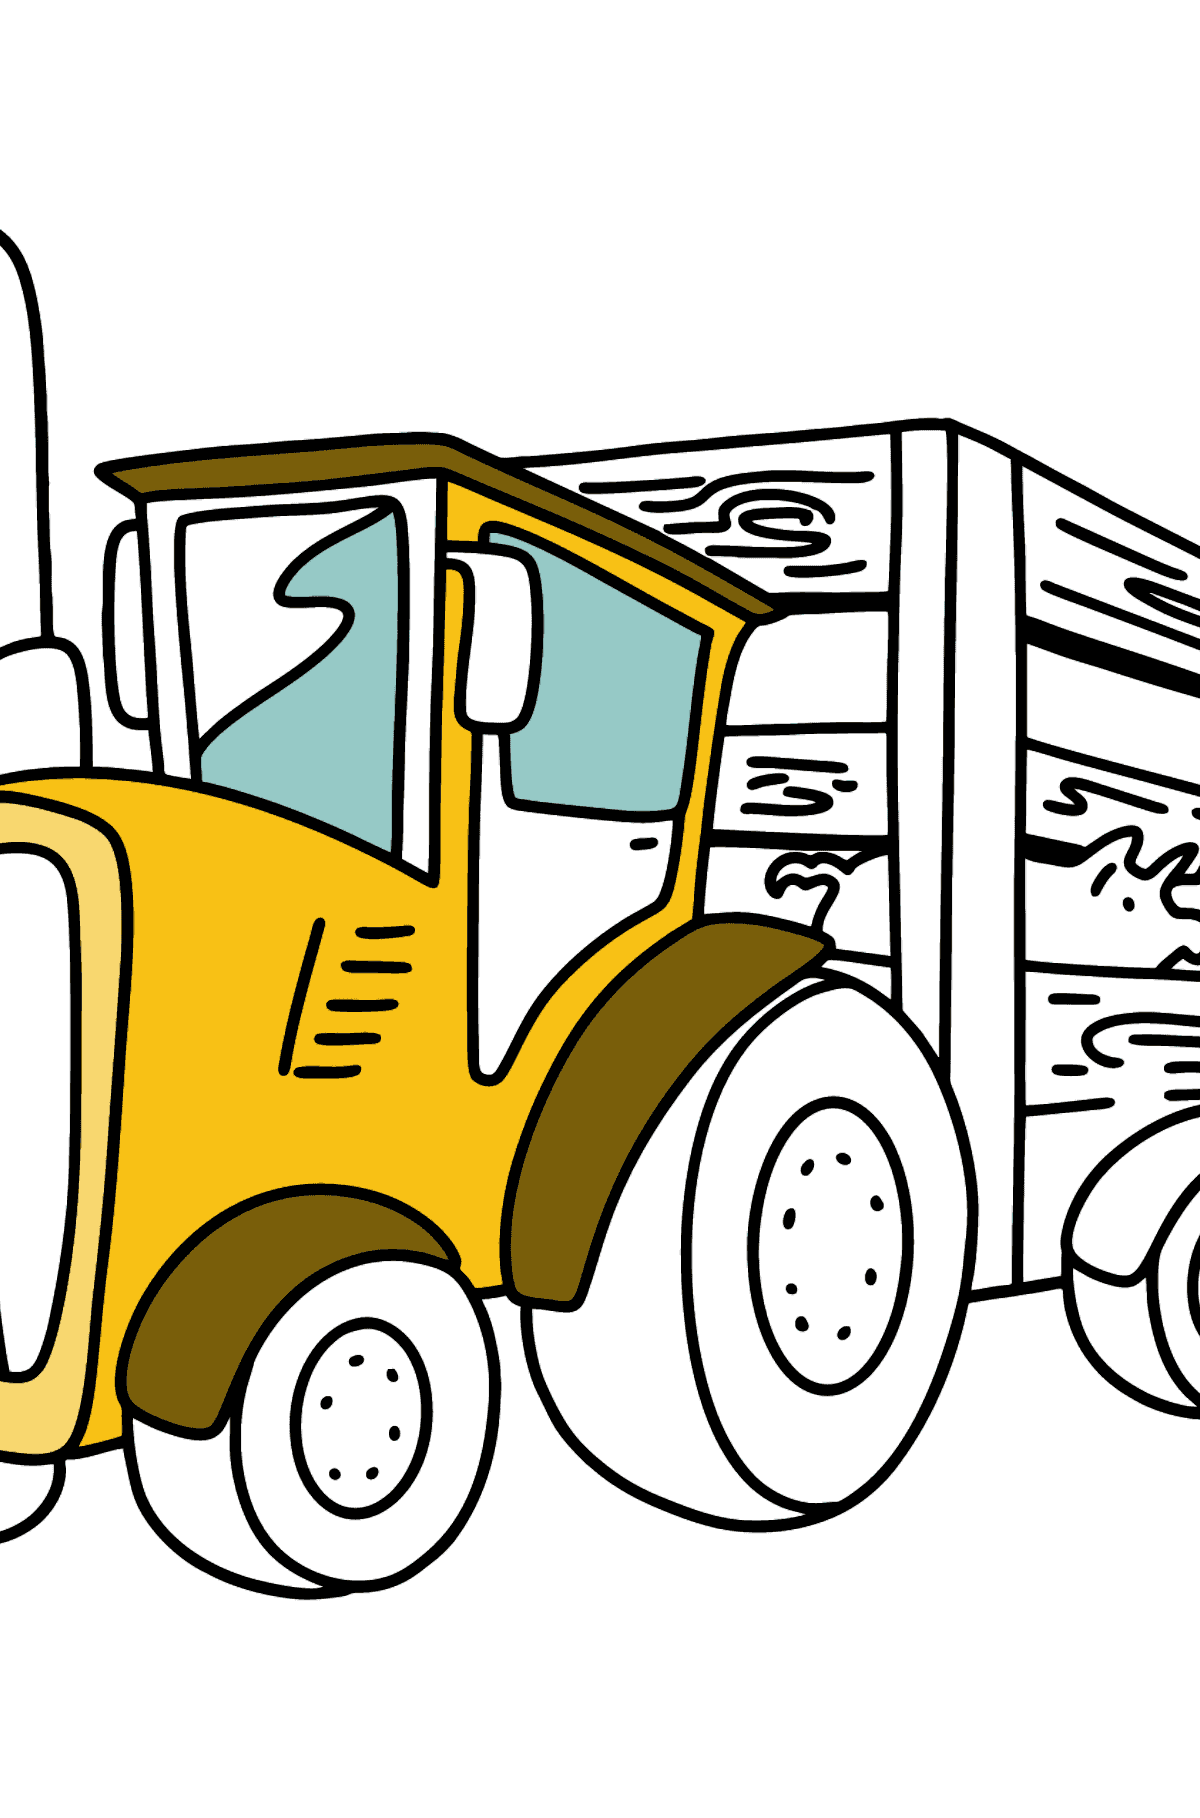 Tractor with Pig Trailer coloring page - Coloring Pages for Kids